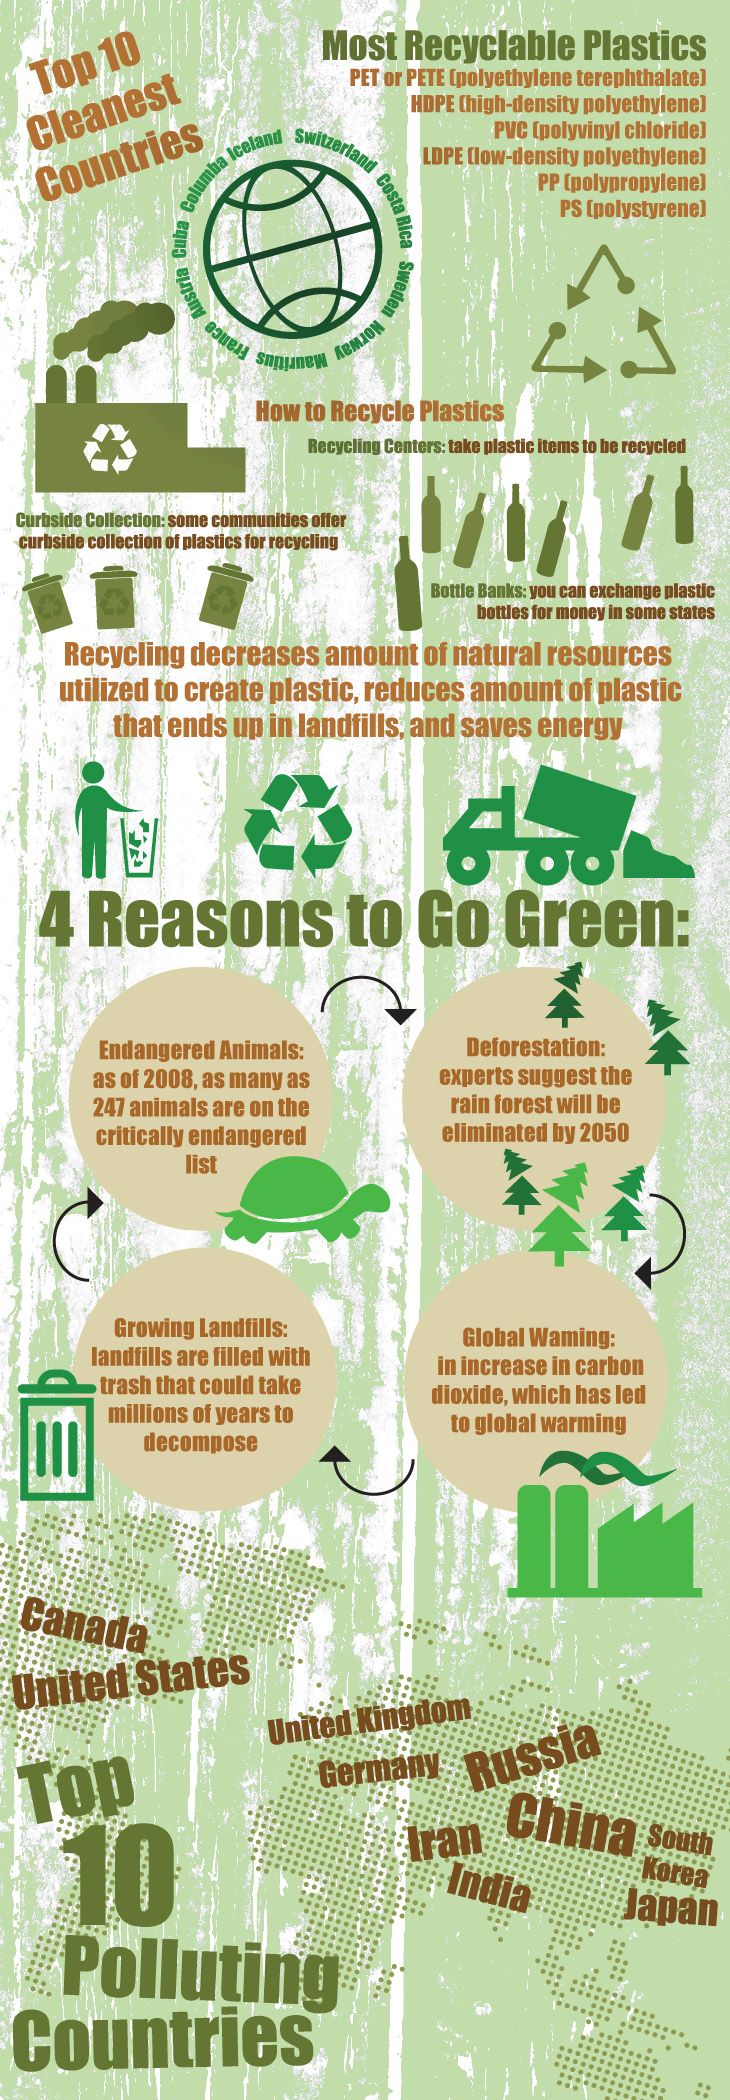 recycling-graphic